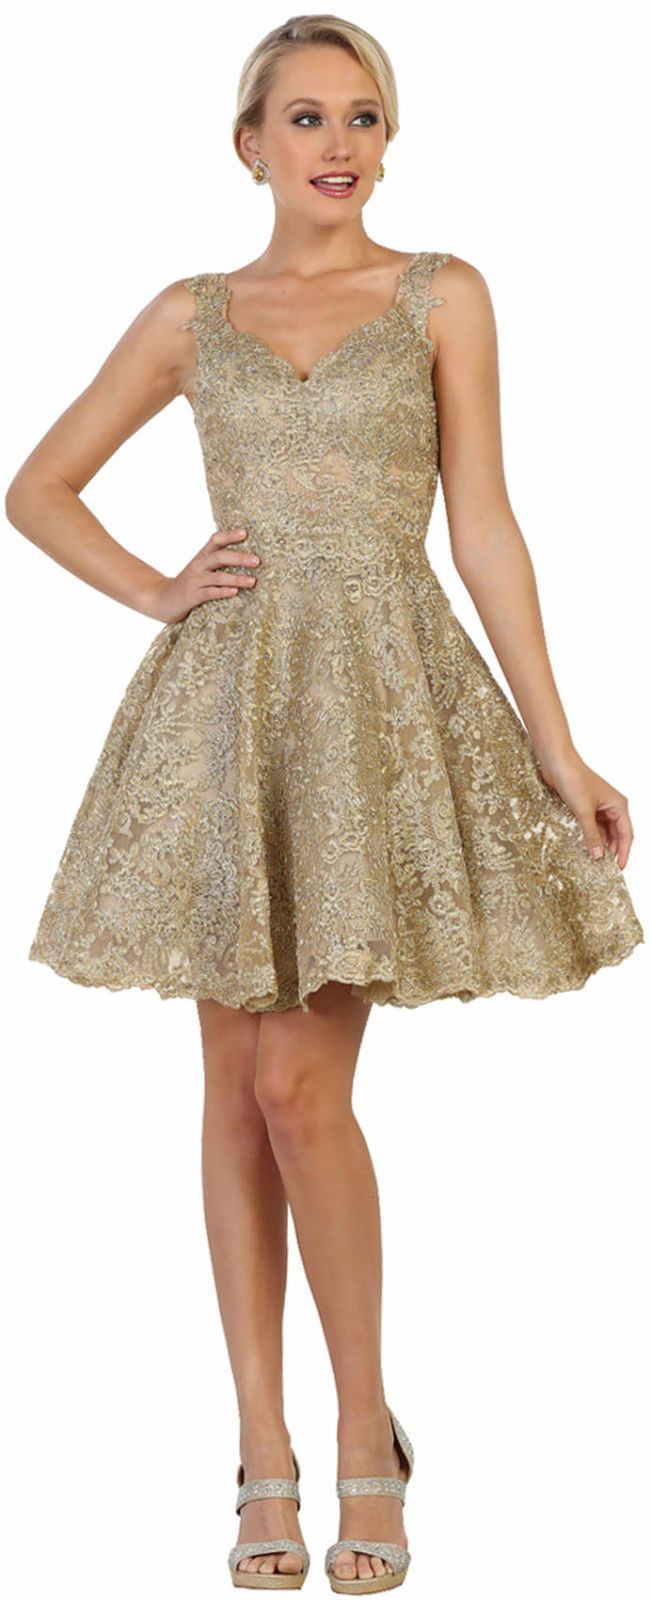 347870eabe94cf Dames  kleding NEW SHORT GRADUATION COCKTAIL SEMI FORMAL HOMECOMING  BIRTHDAY PARTY PROM DRESS